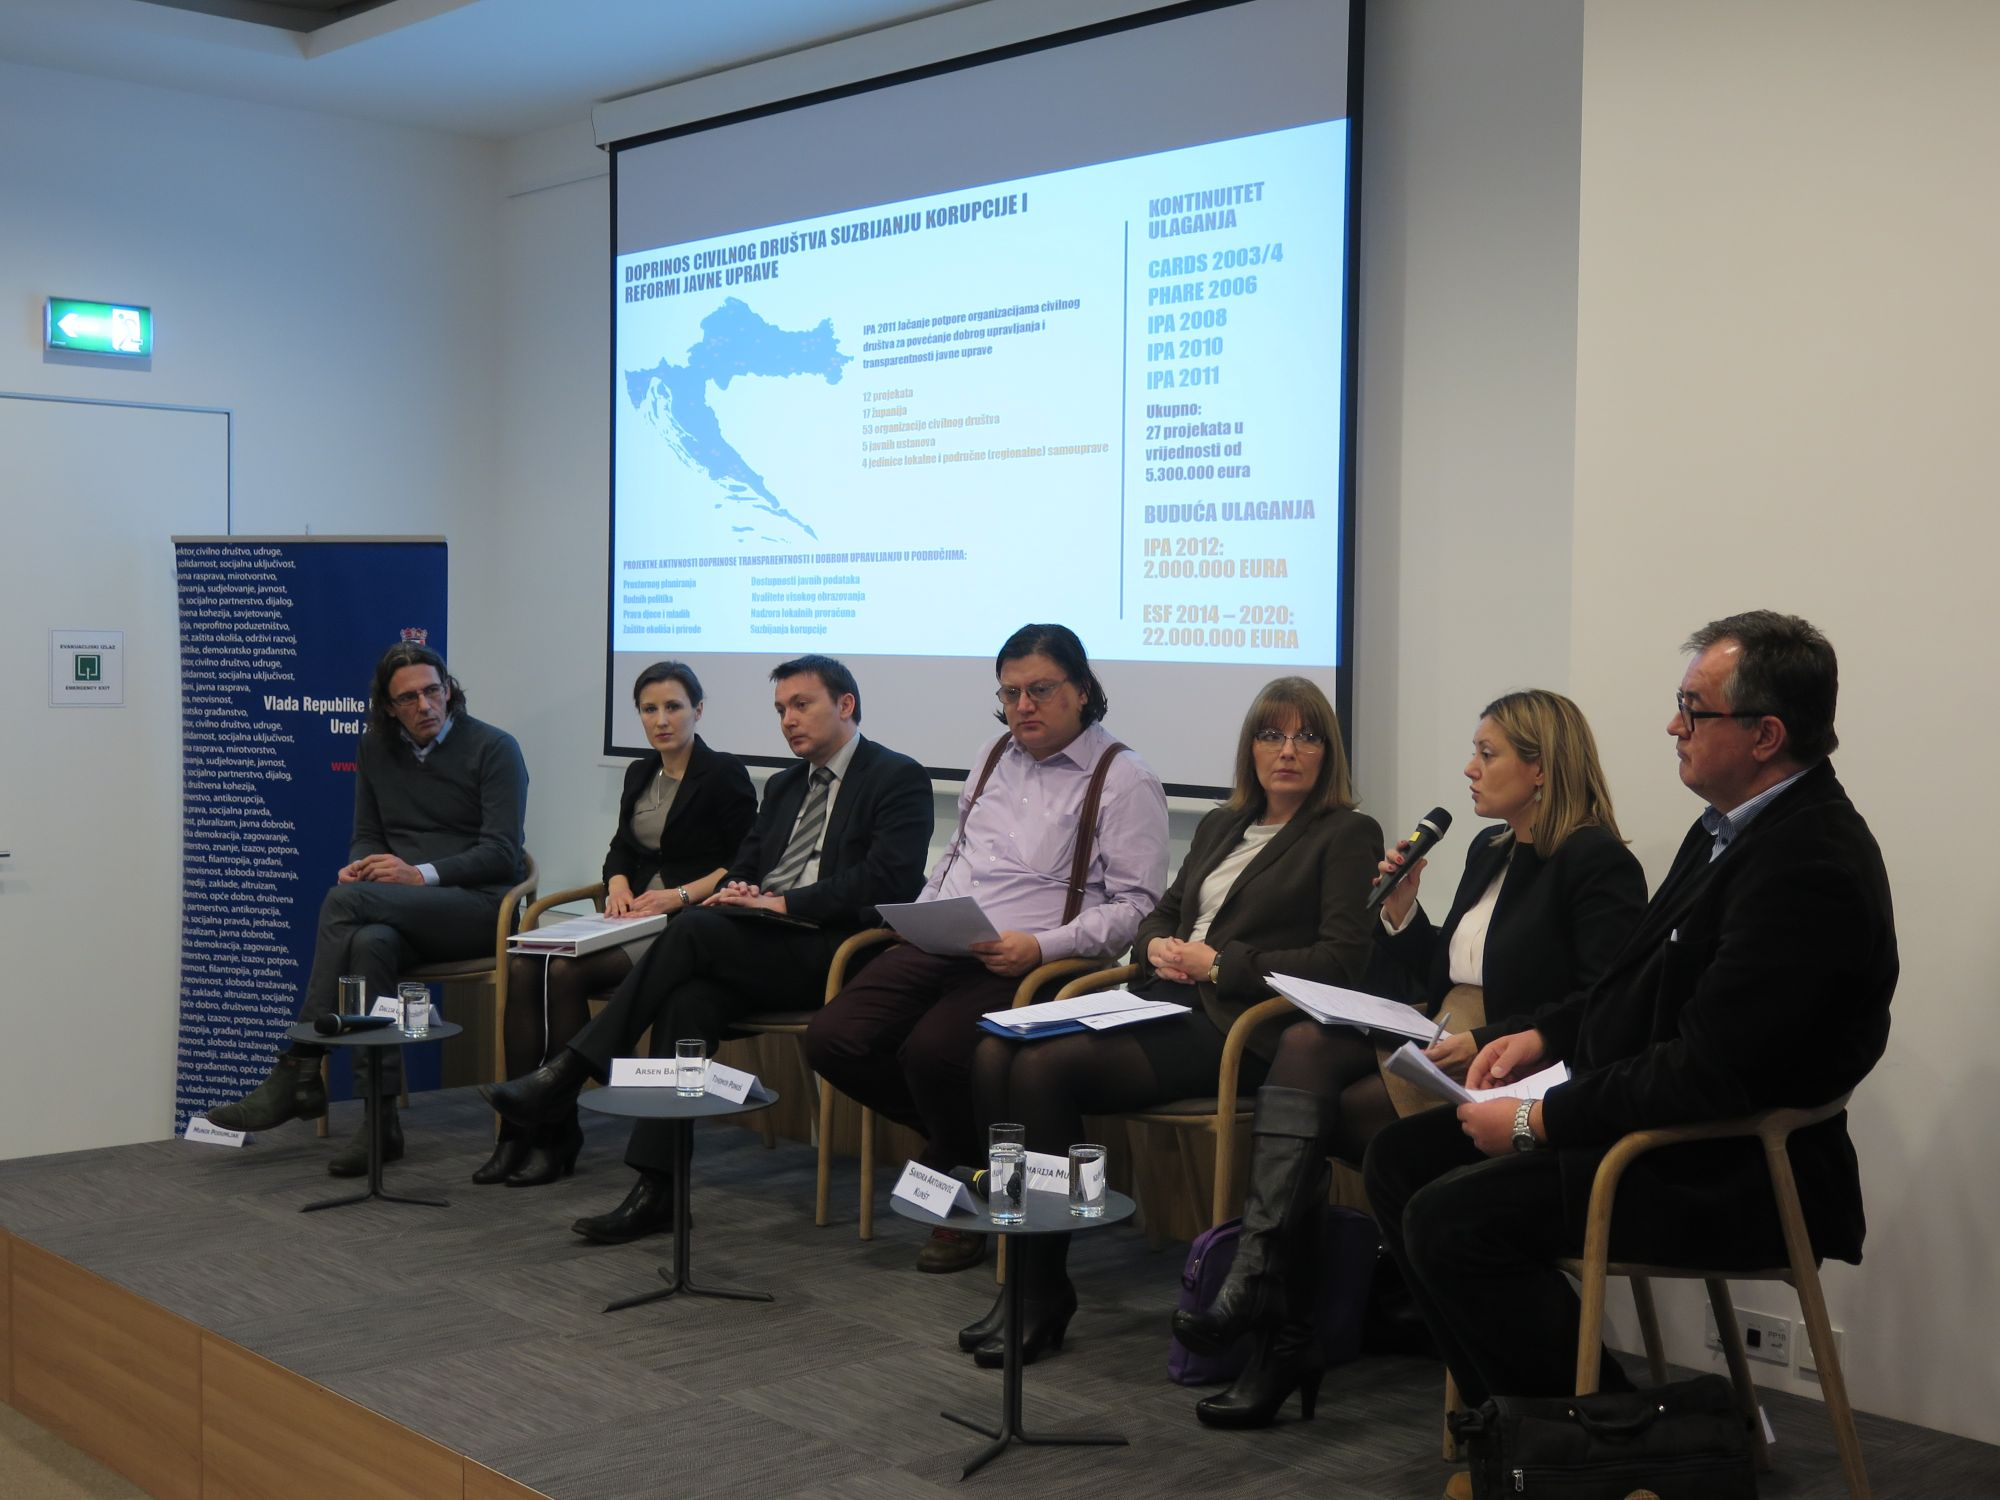 fice for Cooperation with NGOs Panel discussion on civil society